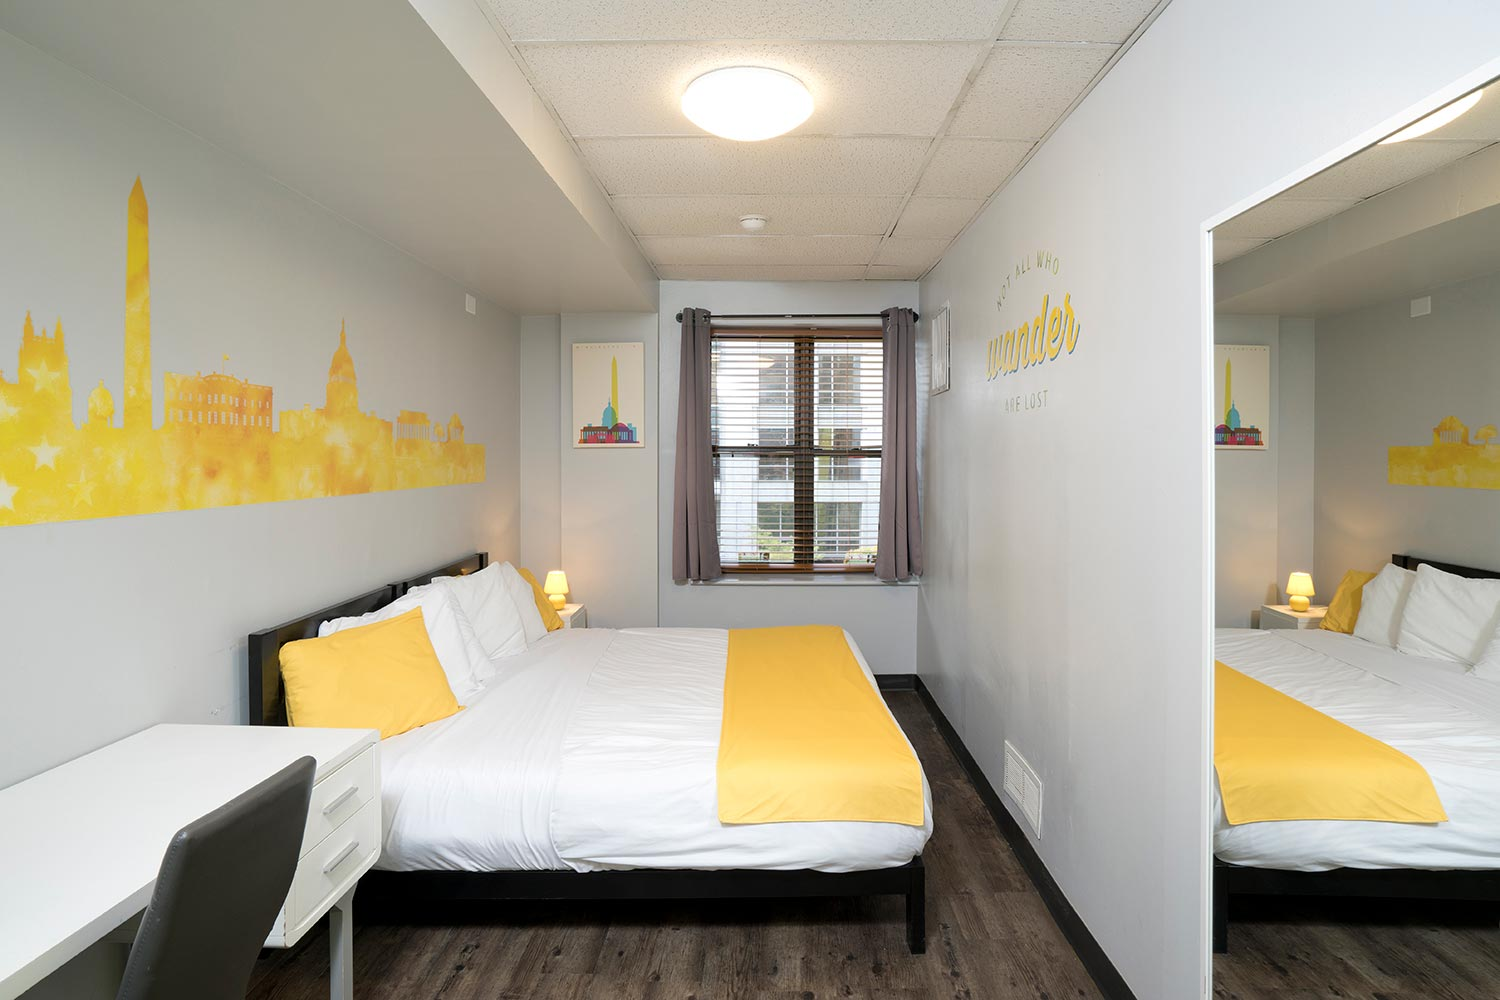 Room View with double bed